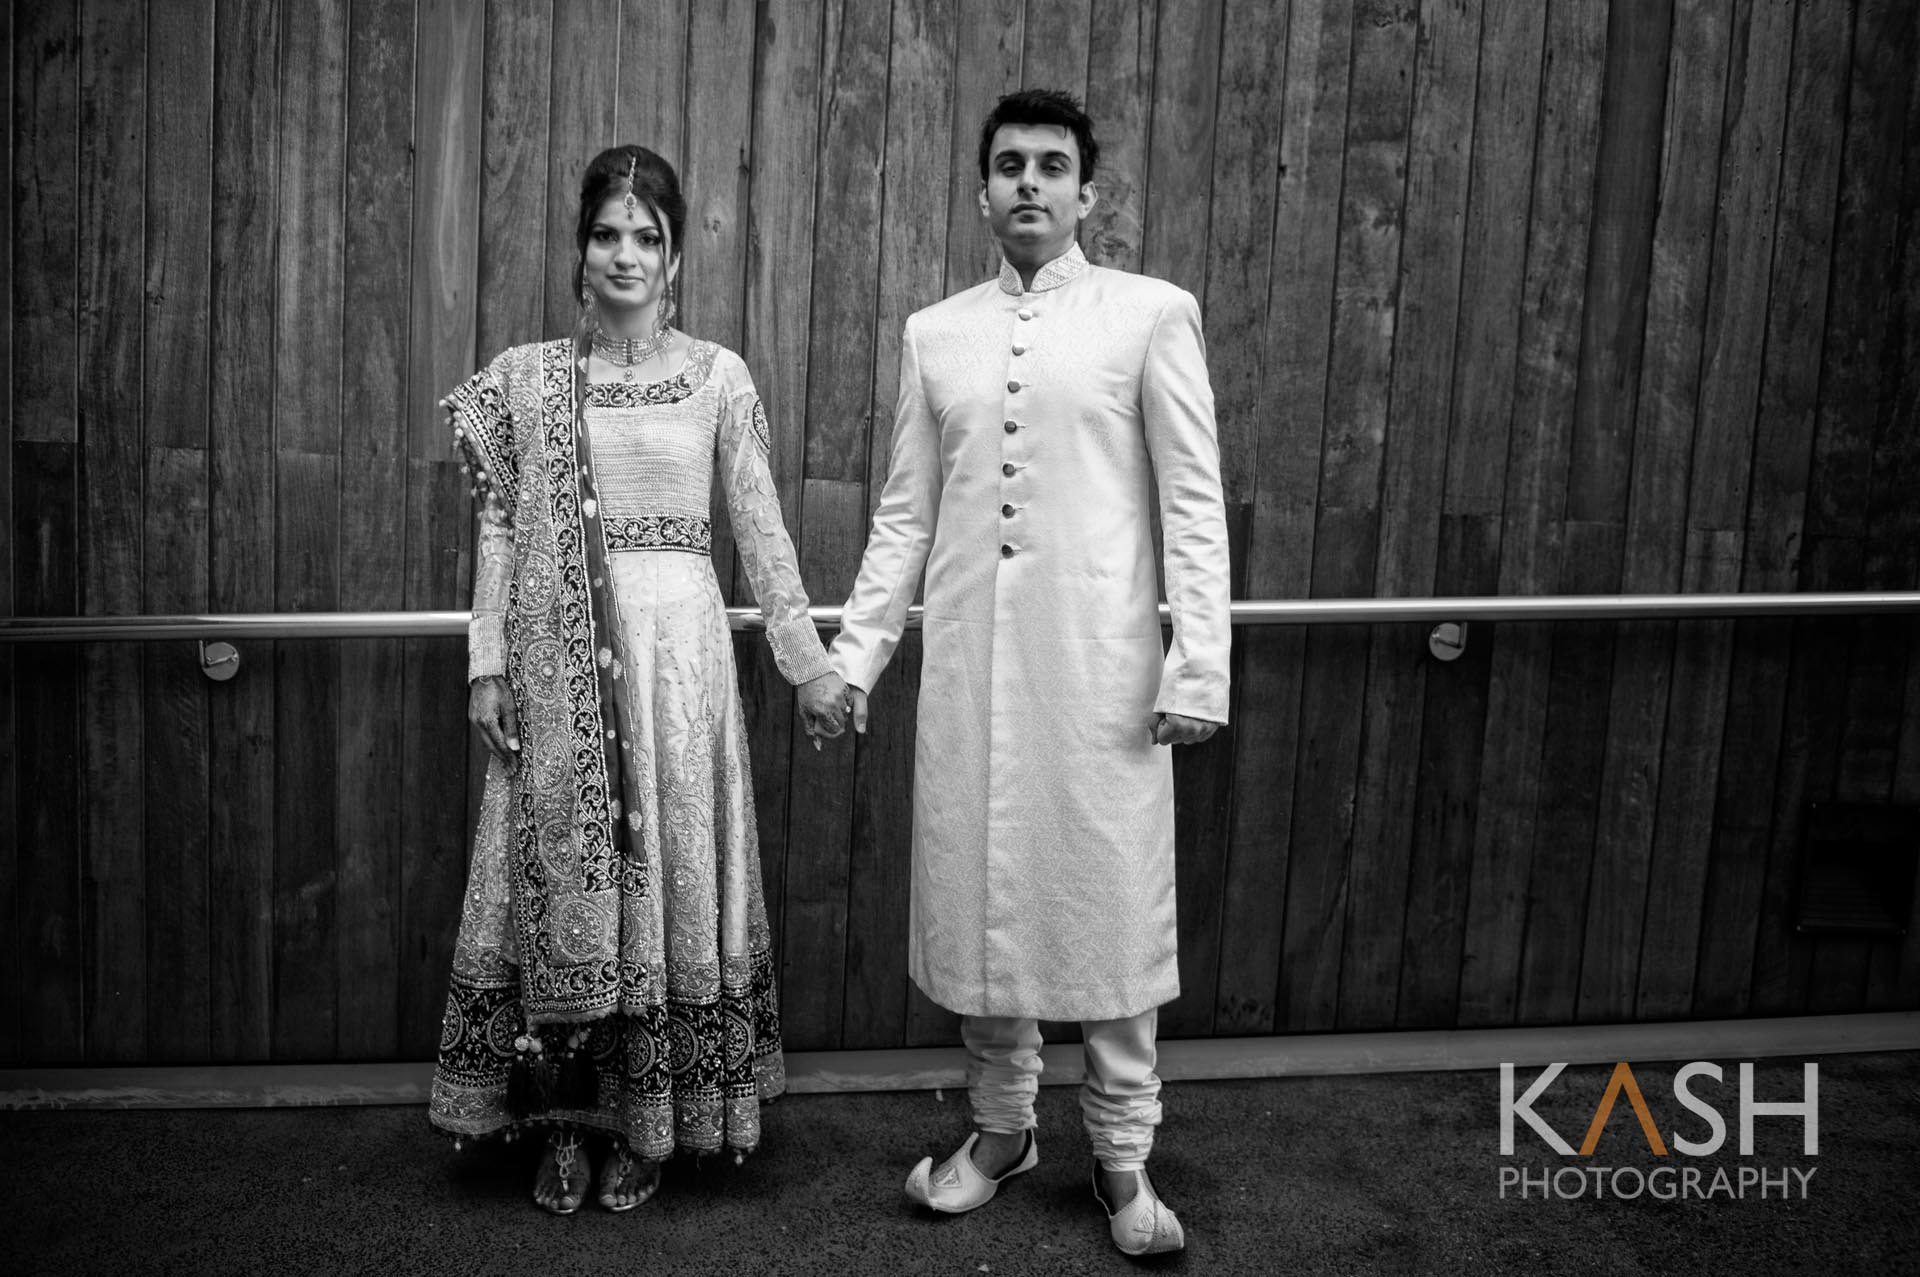 KASH PHOTOGRAPHY 5964